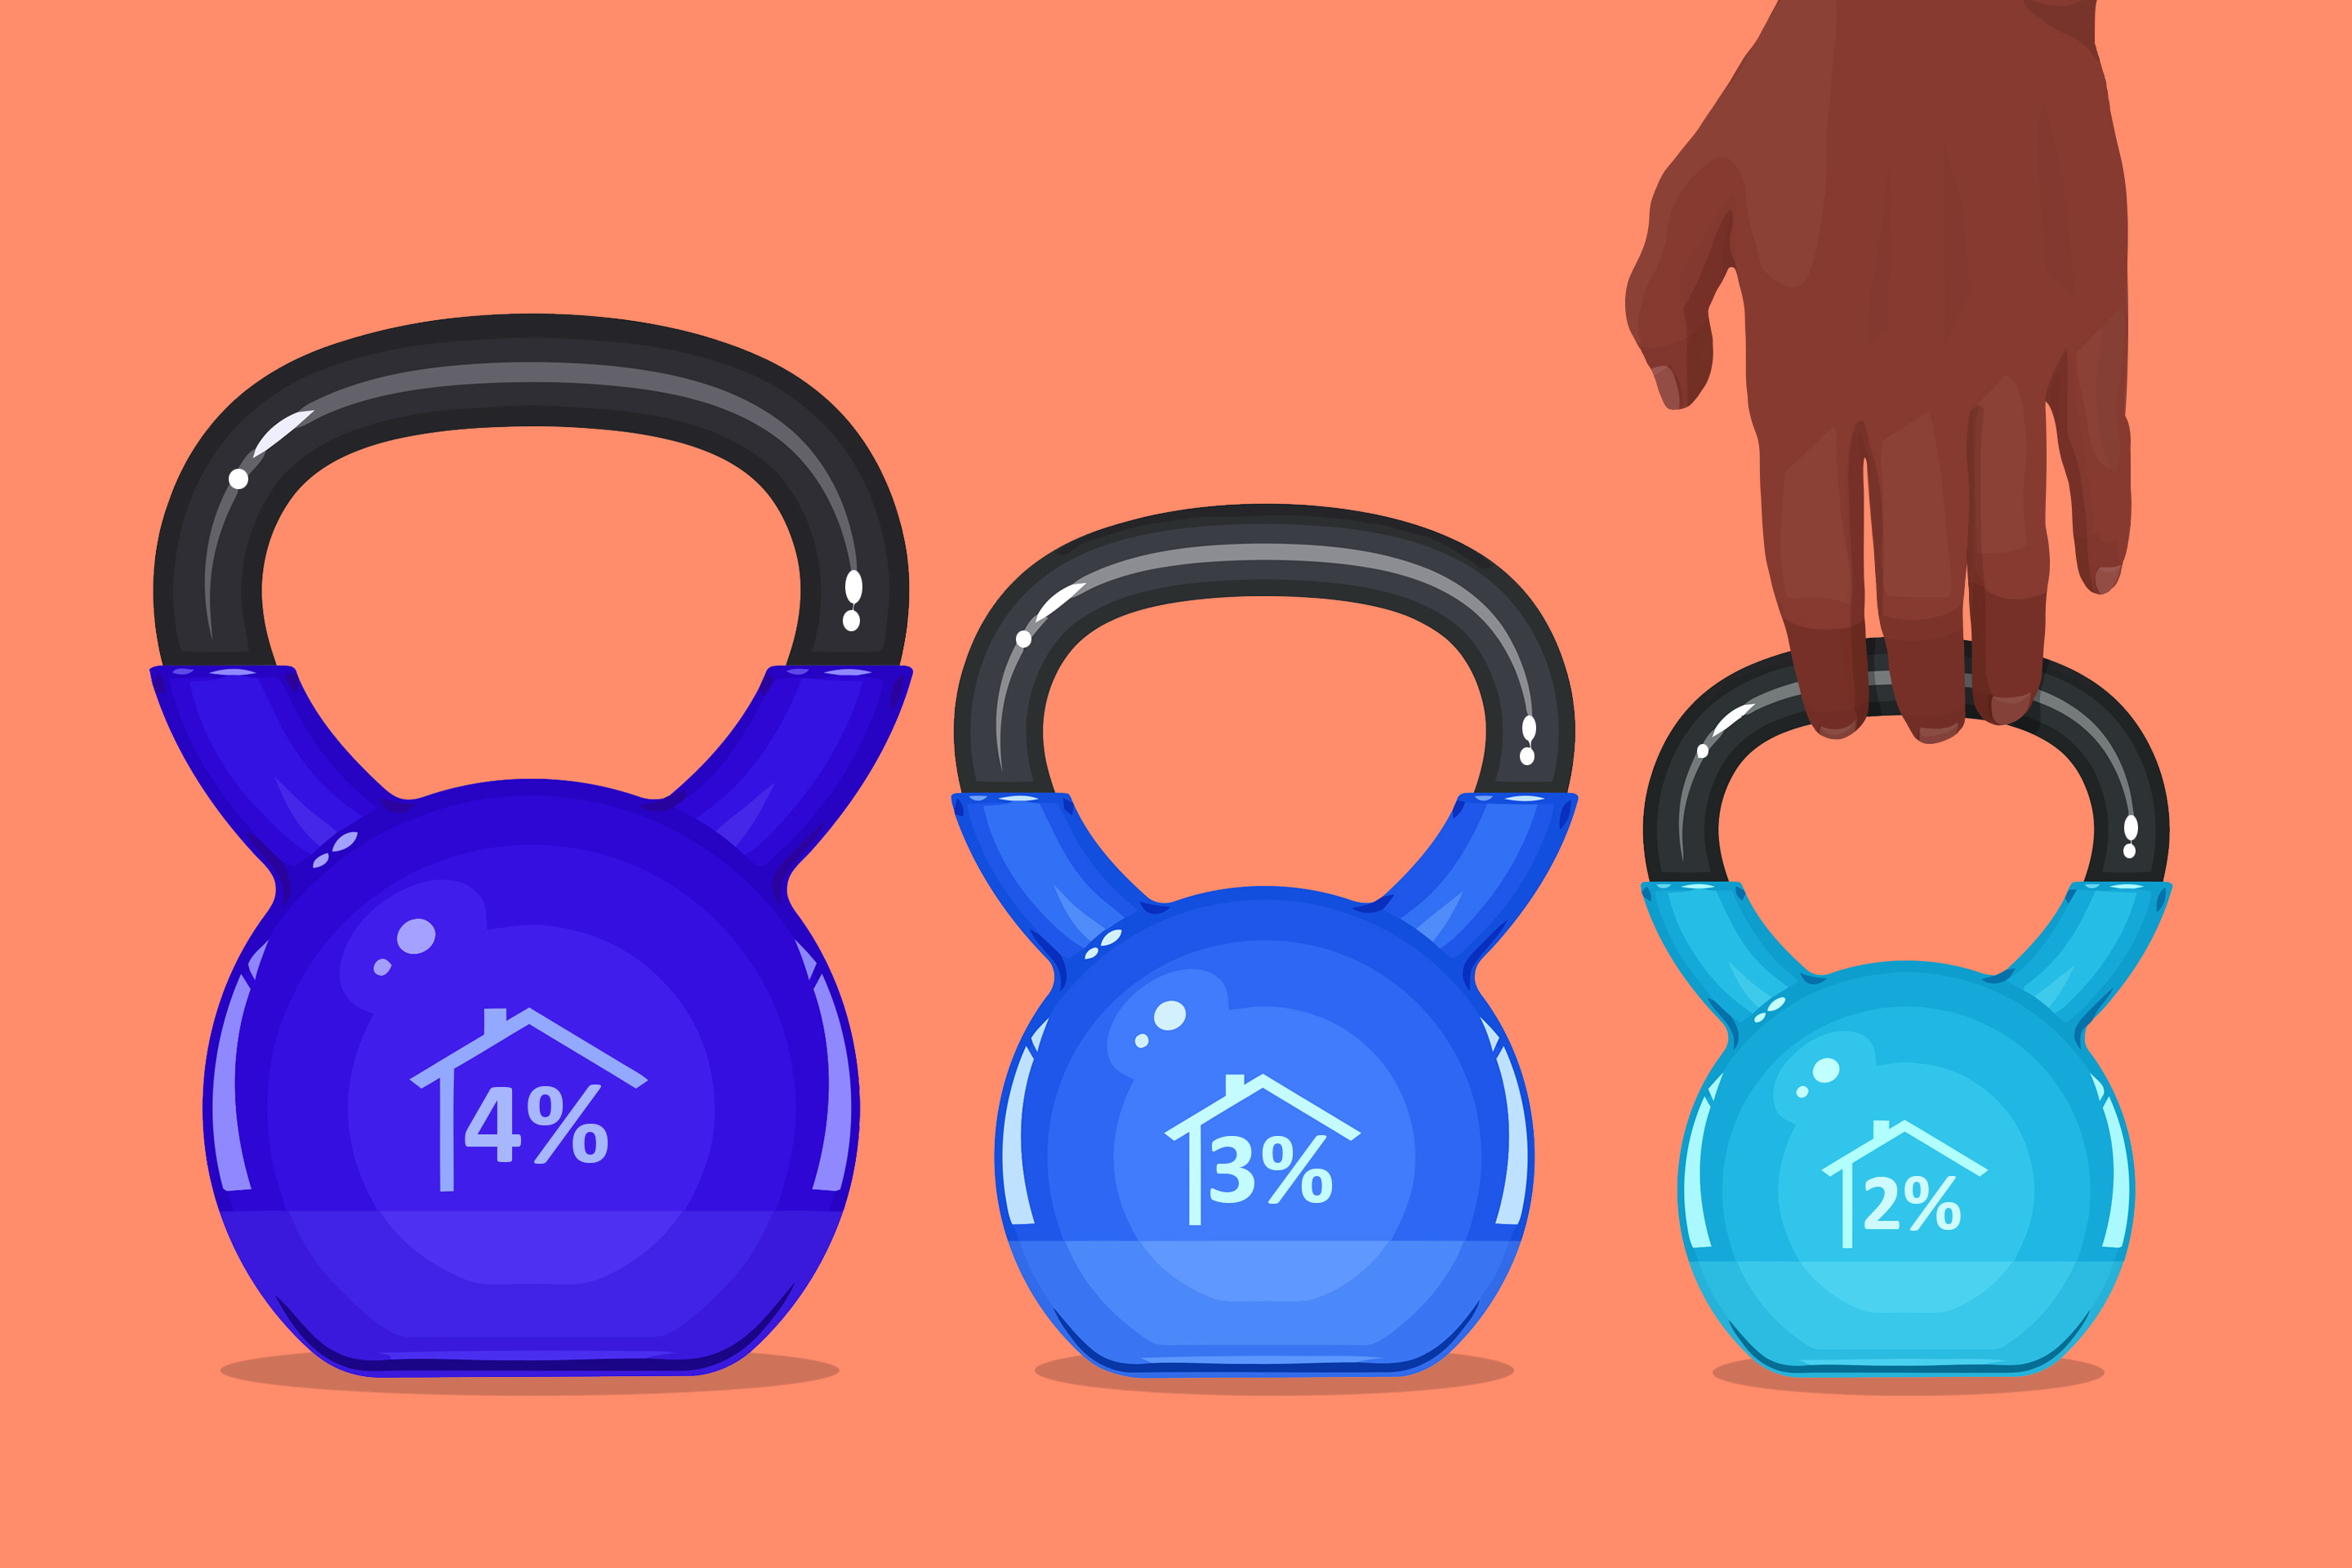 three blue kettlebells in a row with percentages written on them in descending order and size